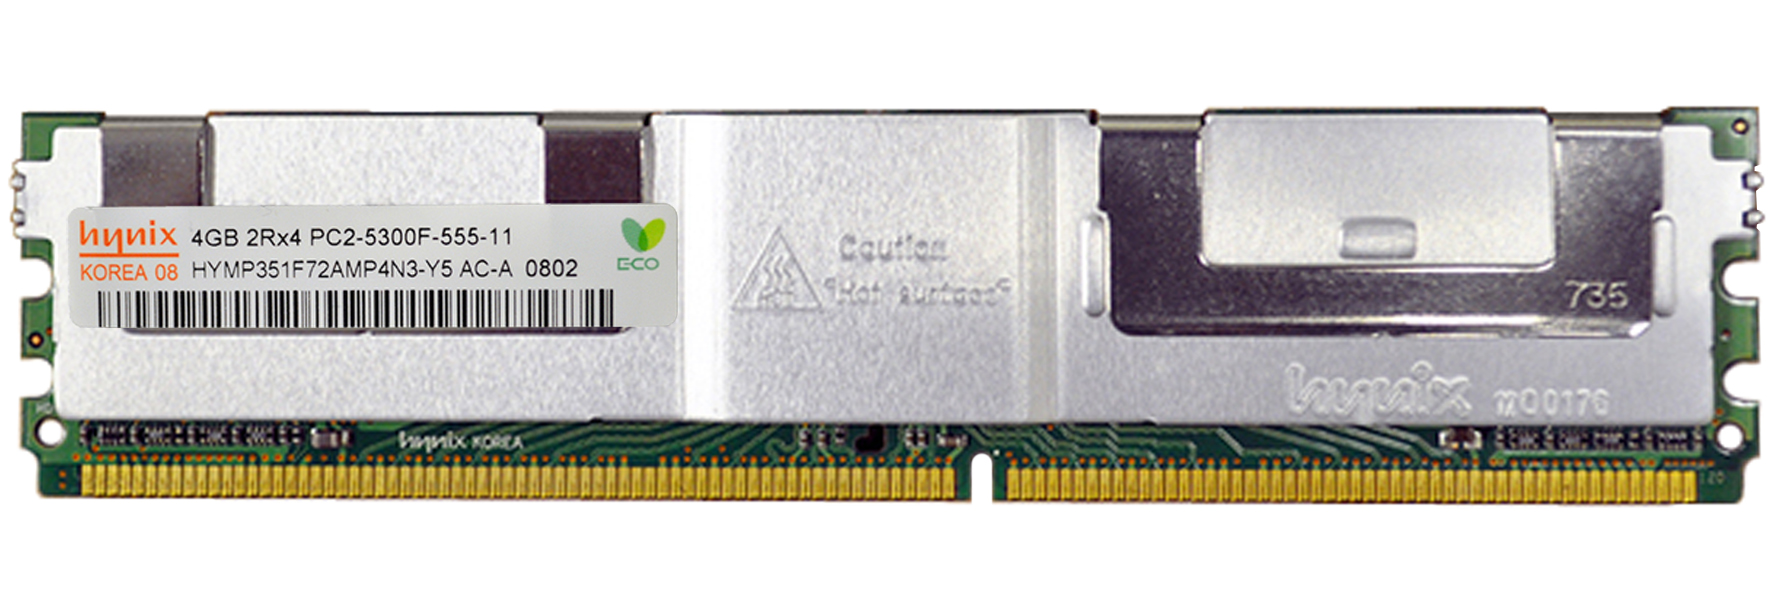 M4L Certified 4GB 667MHz DDR2 PC2-5300 Fully Buffered ECC CL5 240-Pin Dual Rank x4 DIMM Mfr P/N M4L-PC2667D2D4F5-4G